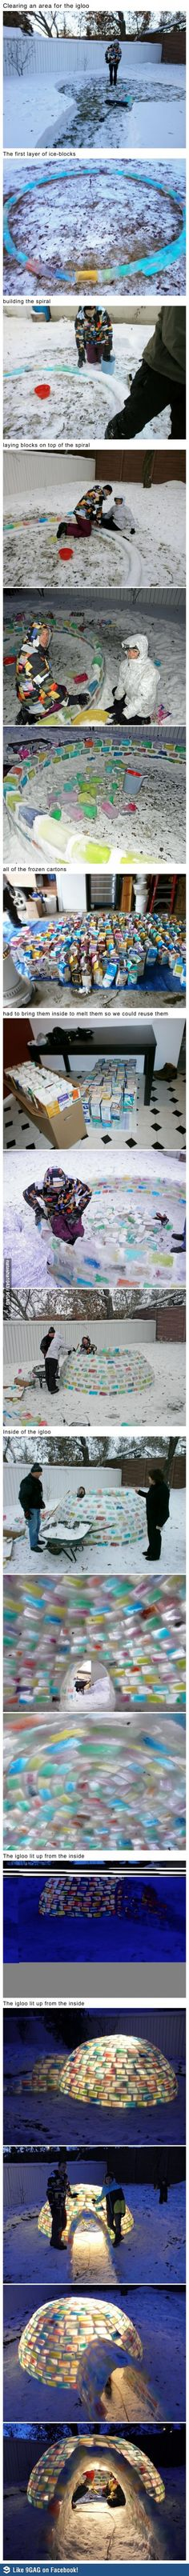 colorful igloo